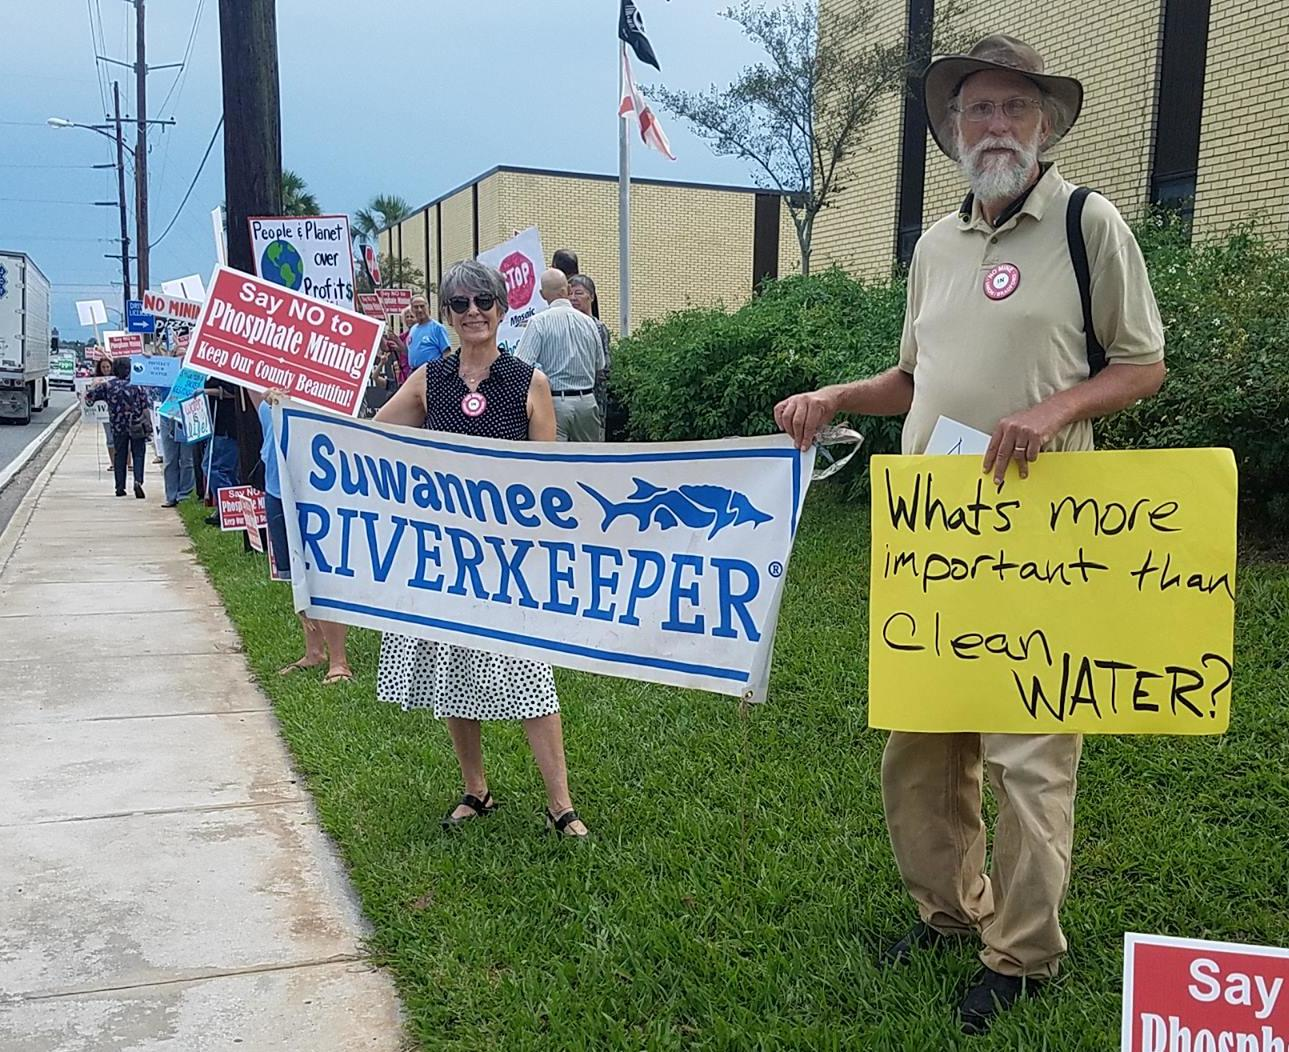 1289x1052 Suwannee Riverkeeper banner at Bradford County Courthouse, in Wwals union county phosphate mining , by John S. Quarterman, for WWALS.net, 21 August 2017